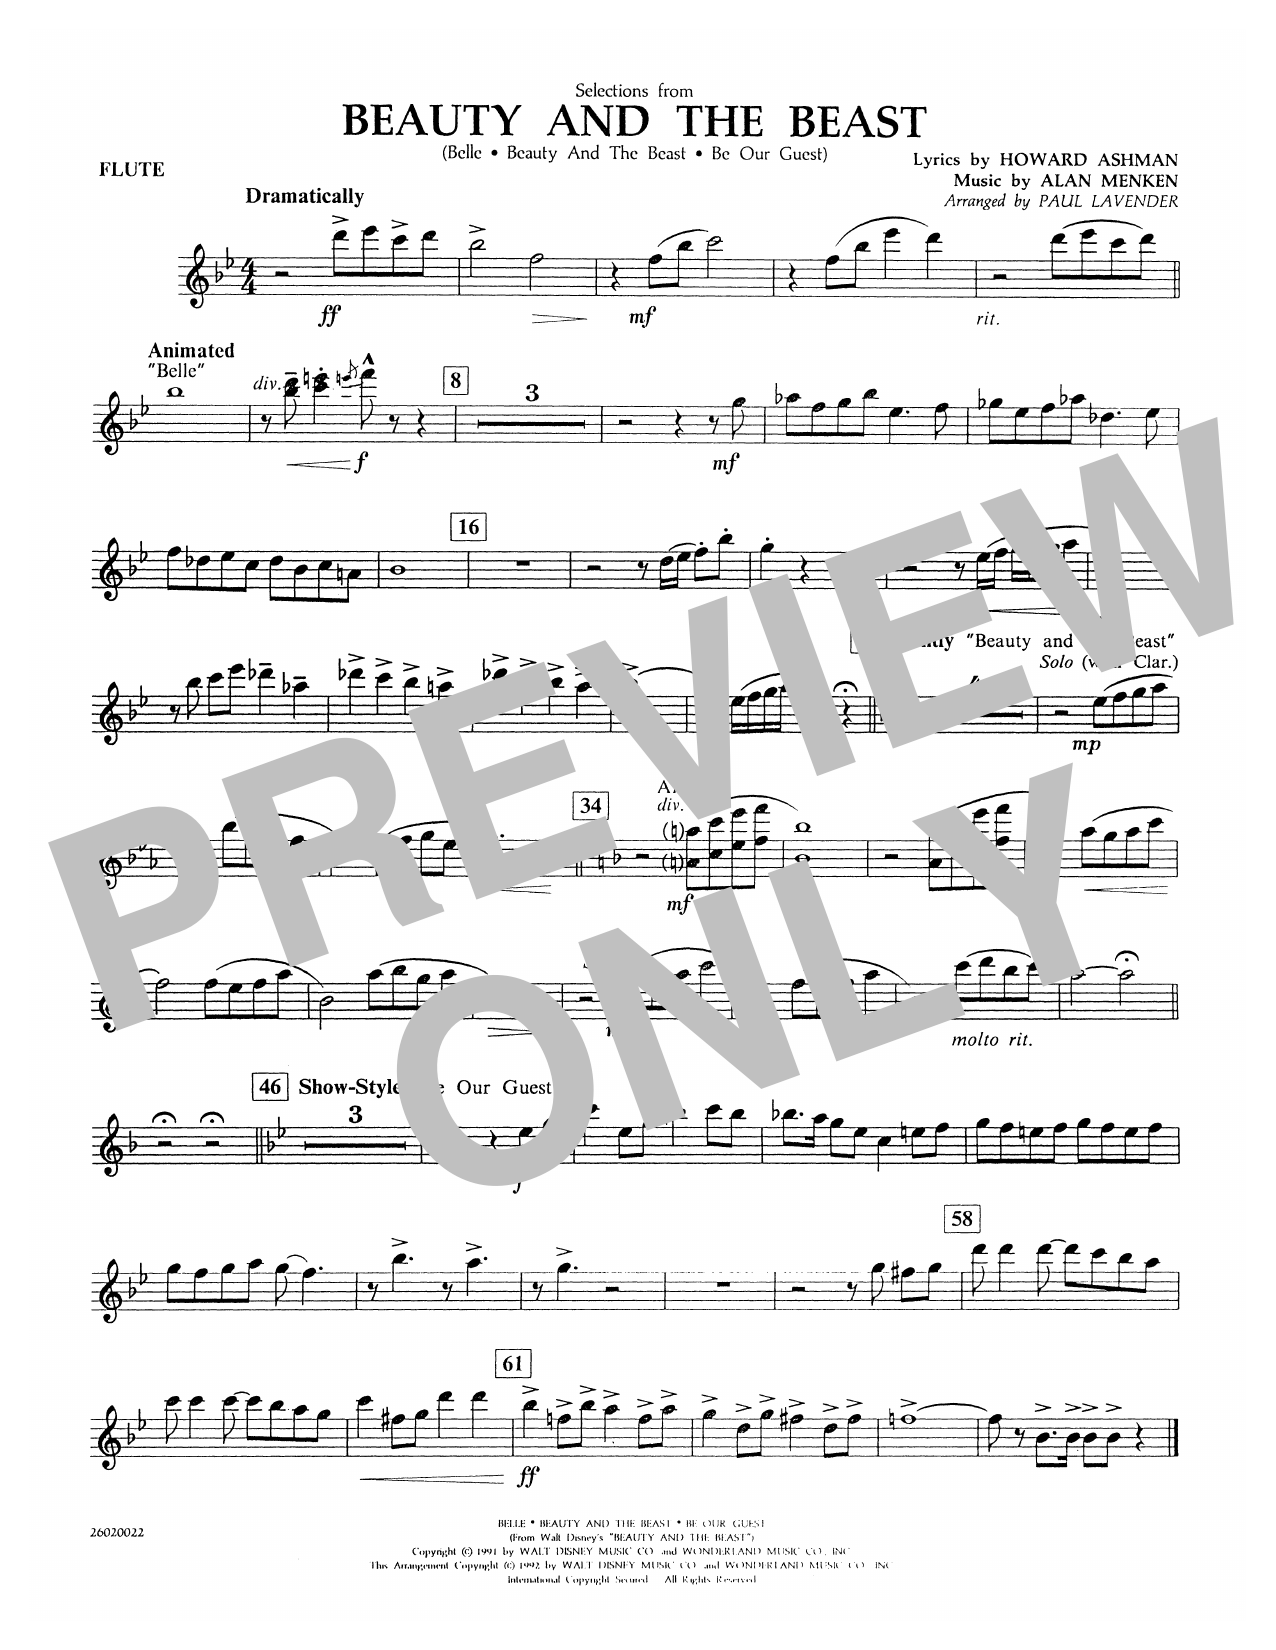 Selections from Beauty and the Beast - Flute Sheet Music